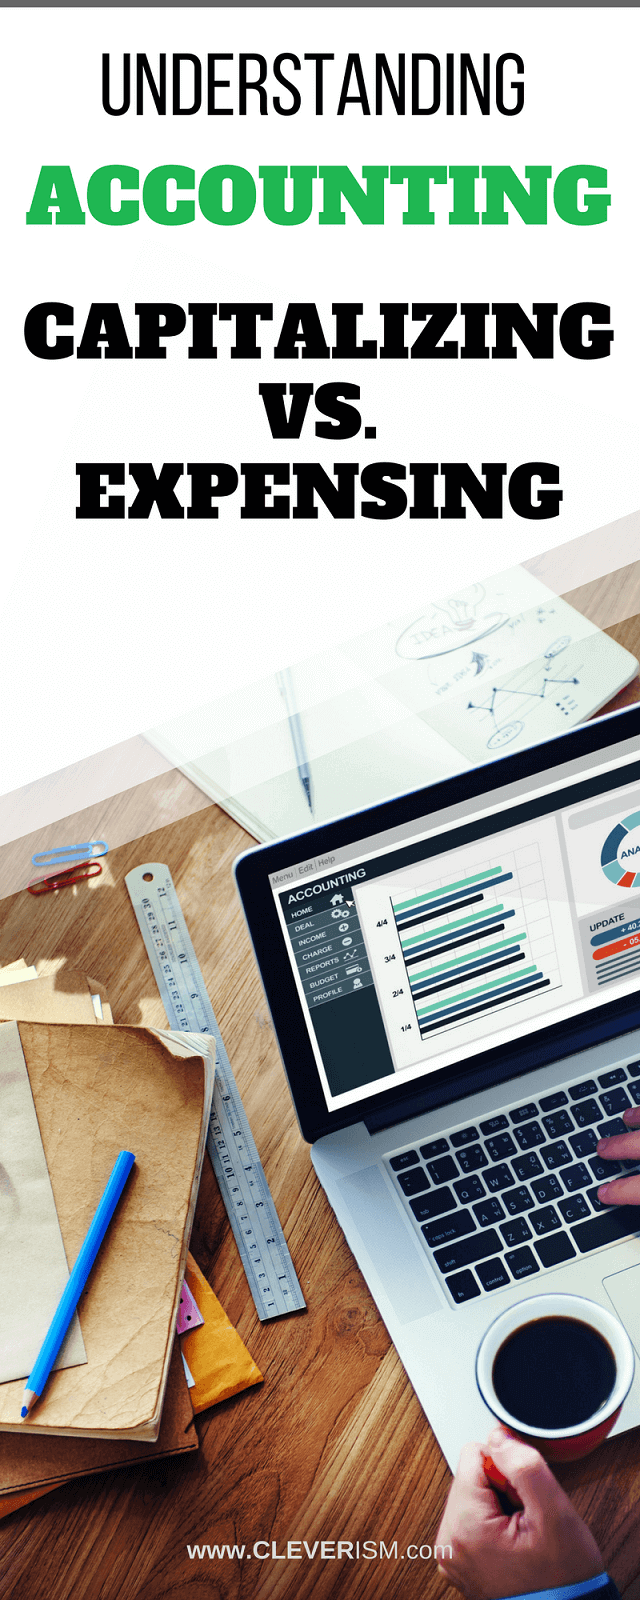 Understanding Accounting Capitalizing vs. Expensing